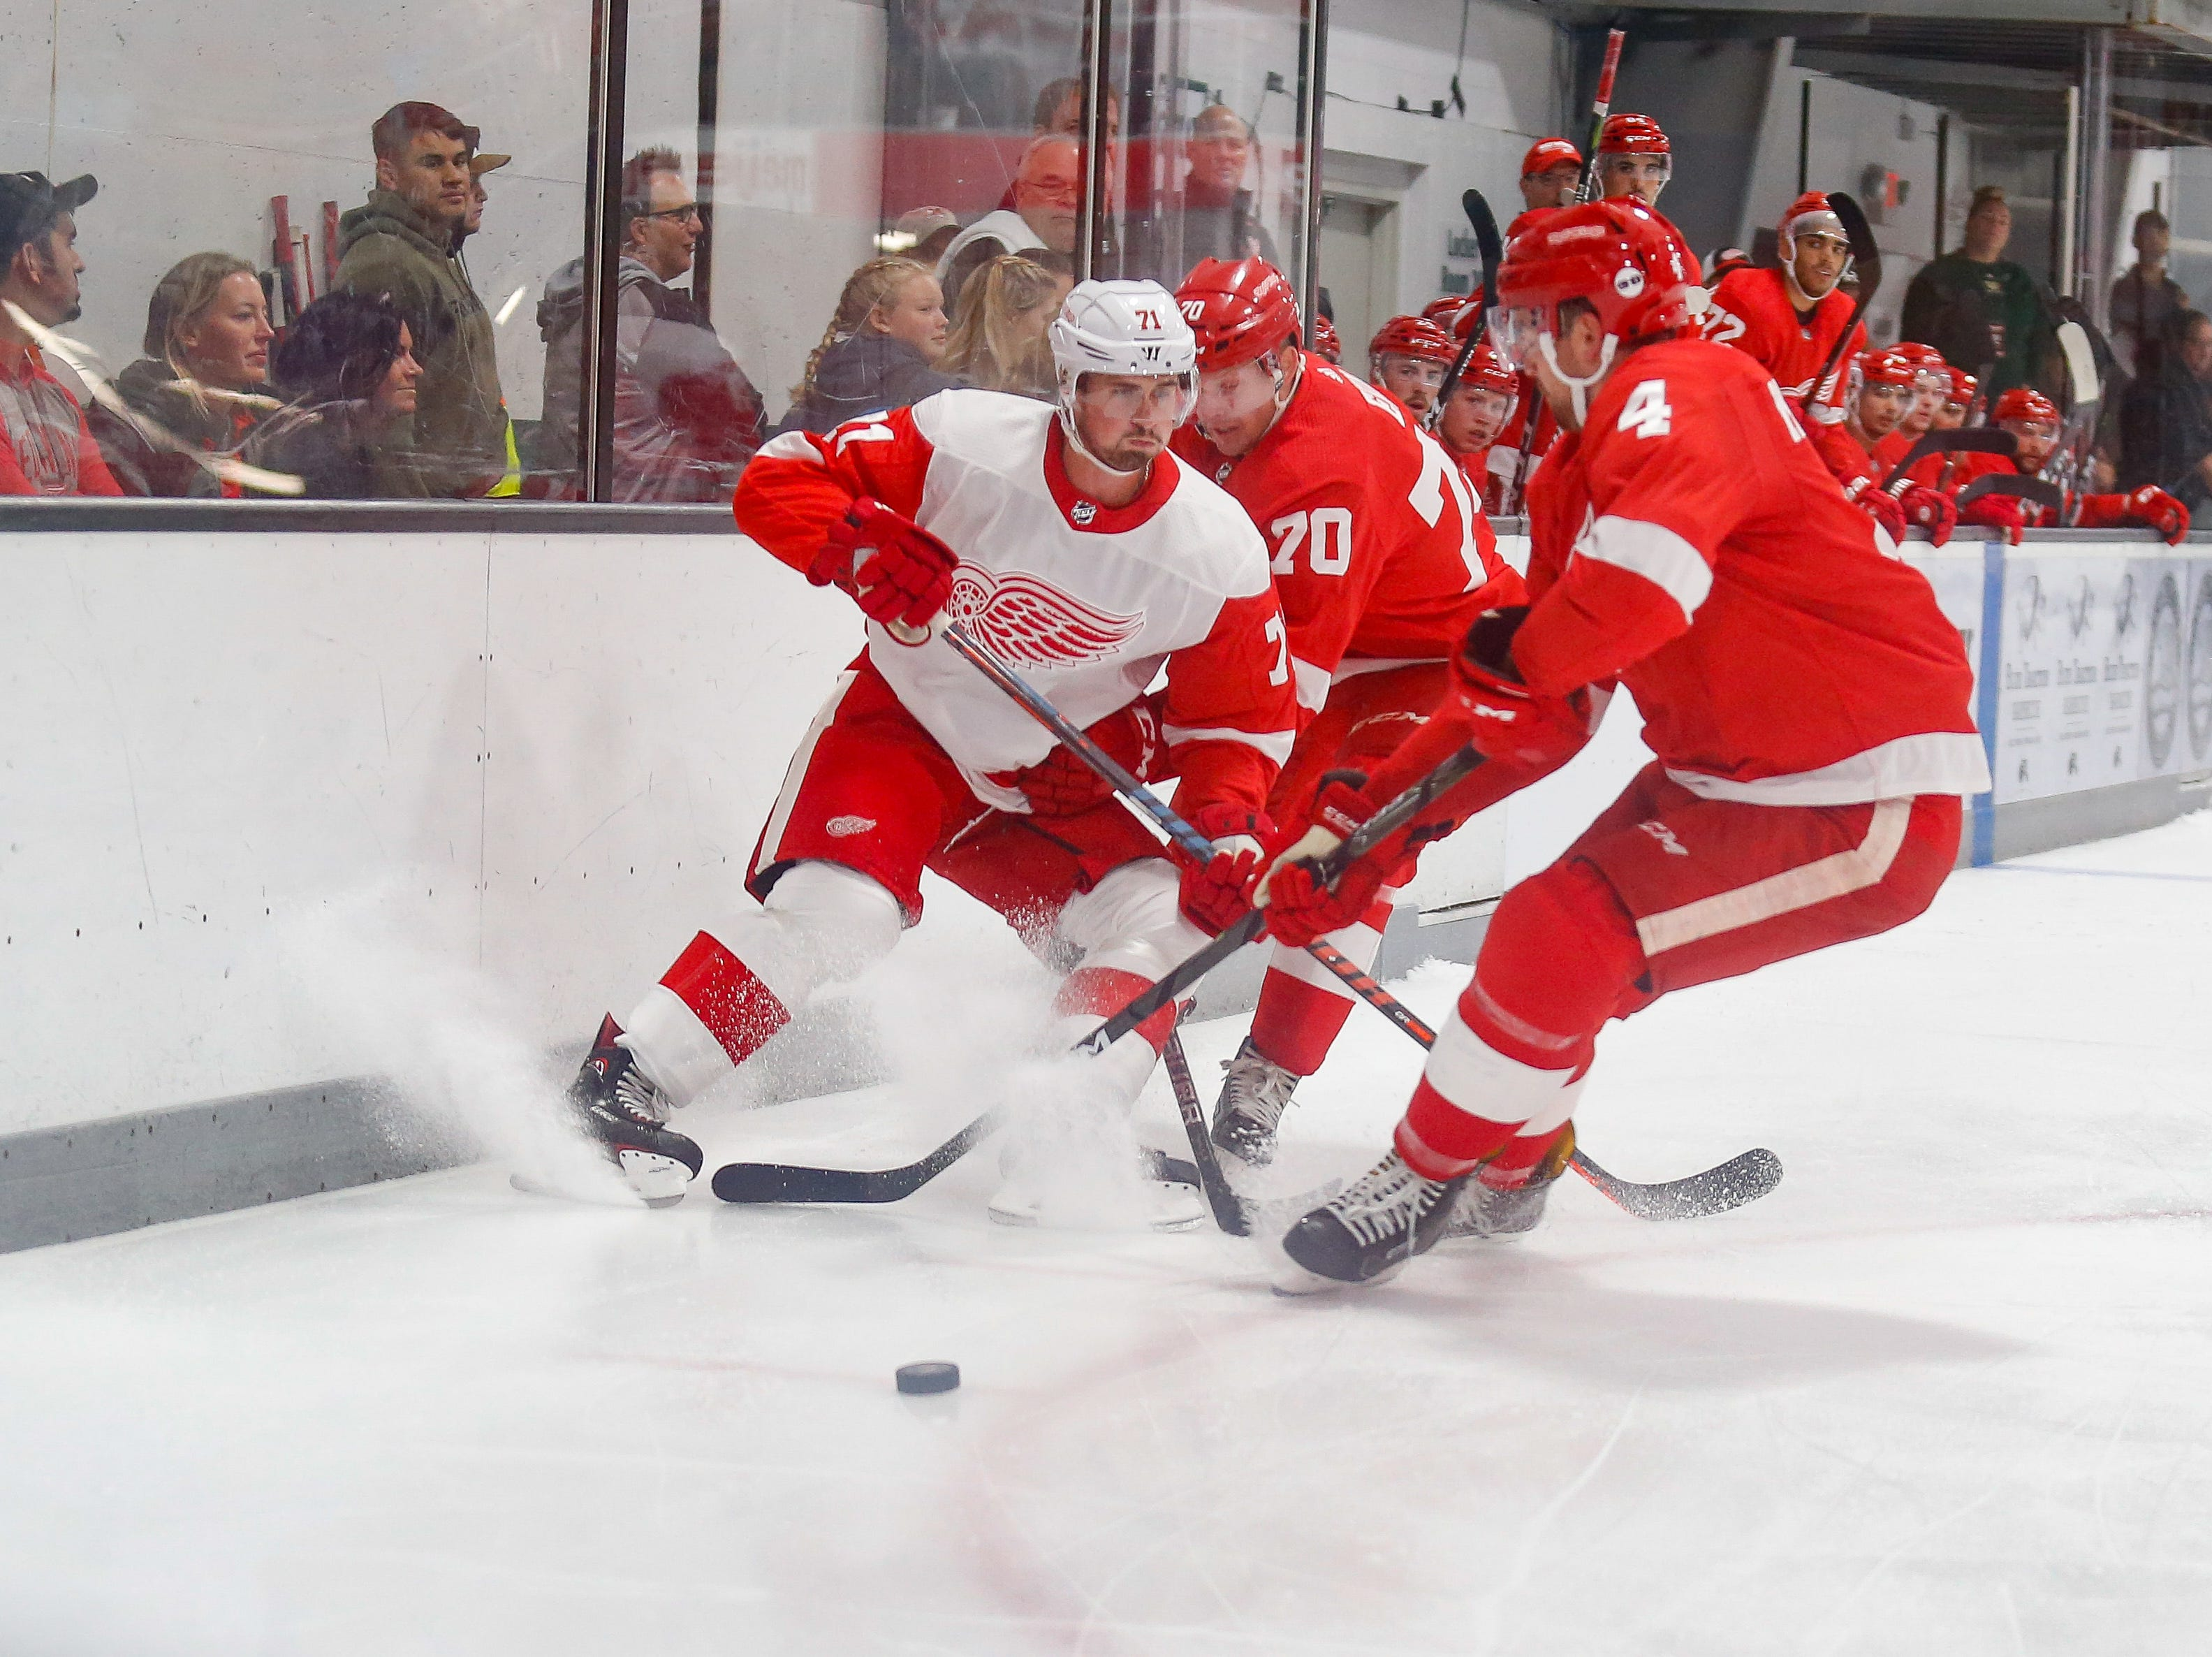 Christoffer Ehn (70) and Dylan McIlrath (4) converge on Dylan Larkin (71) as he tries to bring the puck into Team Red's zone.